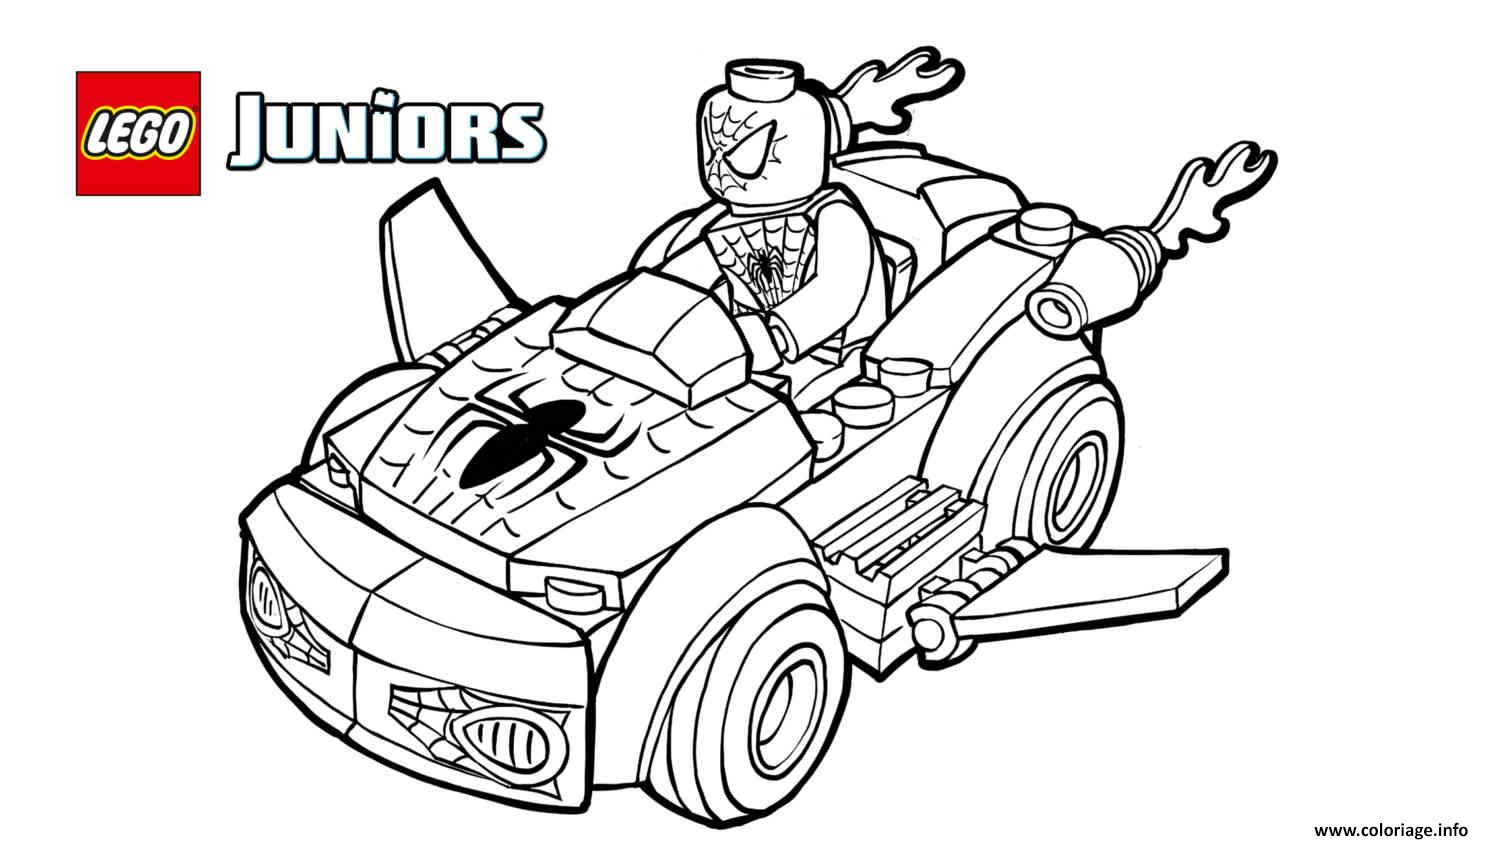 Coloriage lego spiderman 2 voiture lego dessin - Coloriage spiderman 1 ...